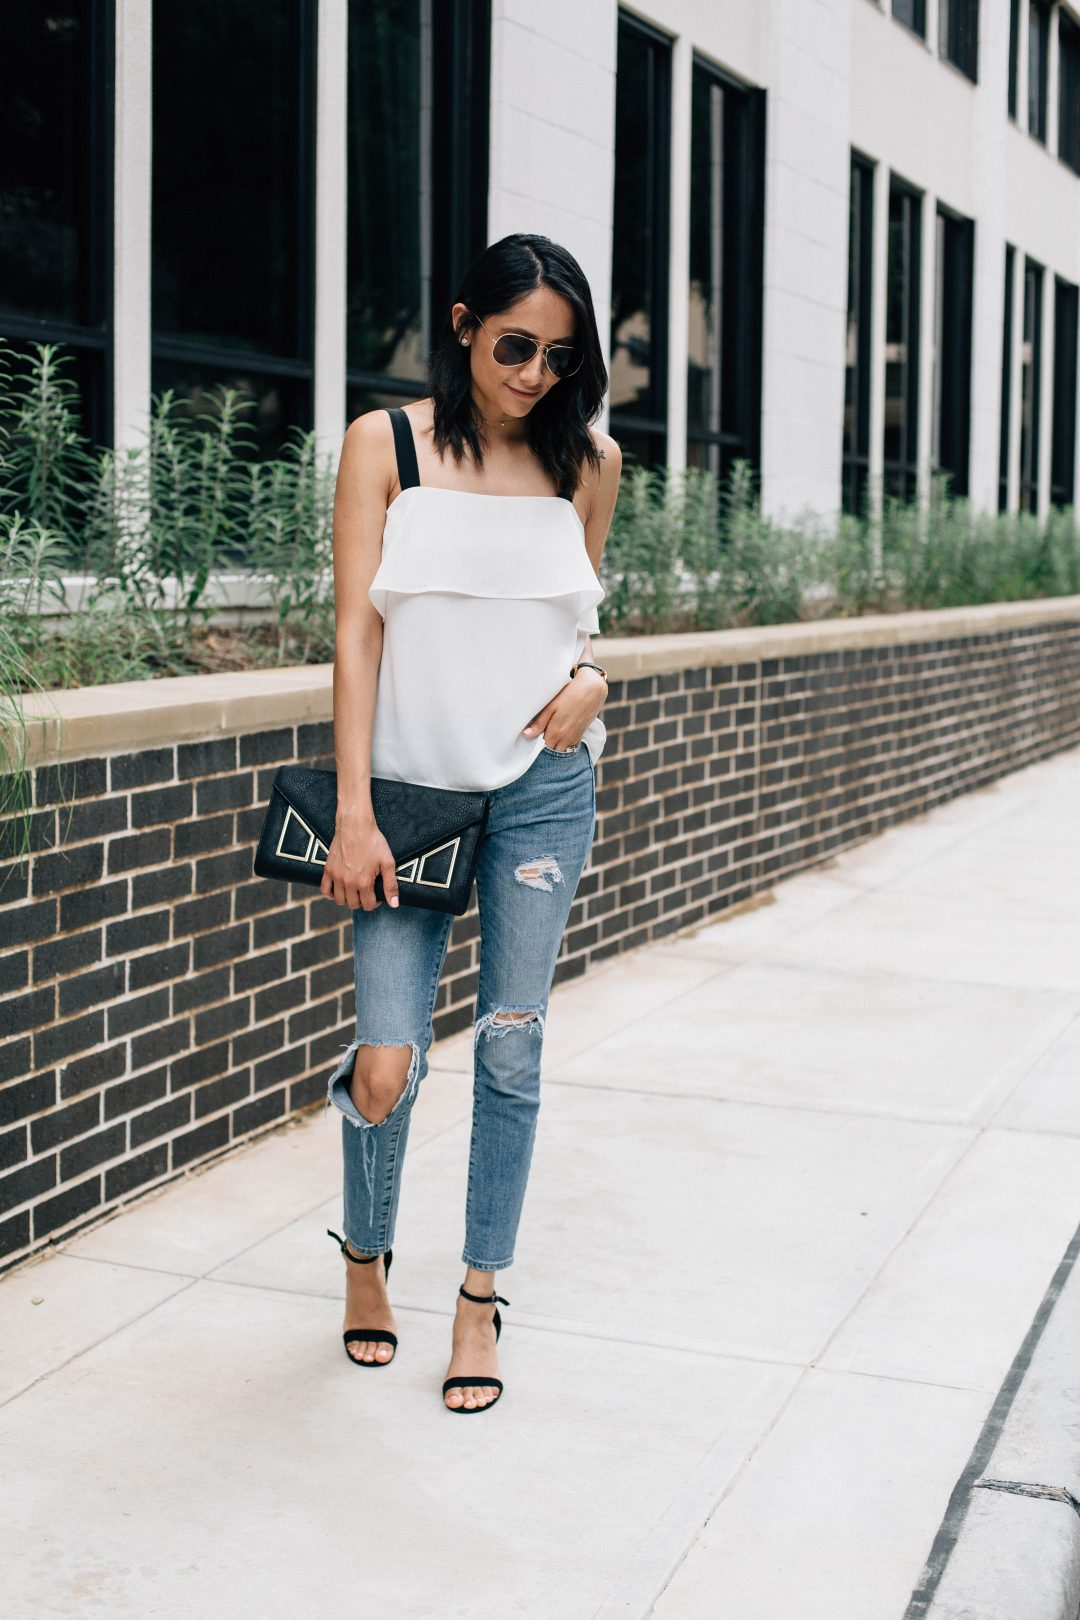 tiered top and ripped jeans. Summer outfit.